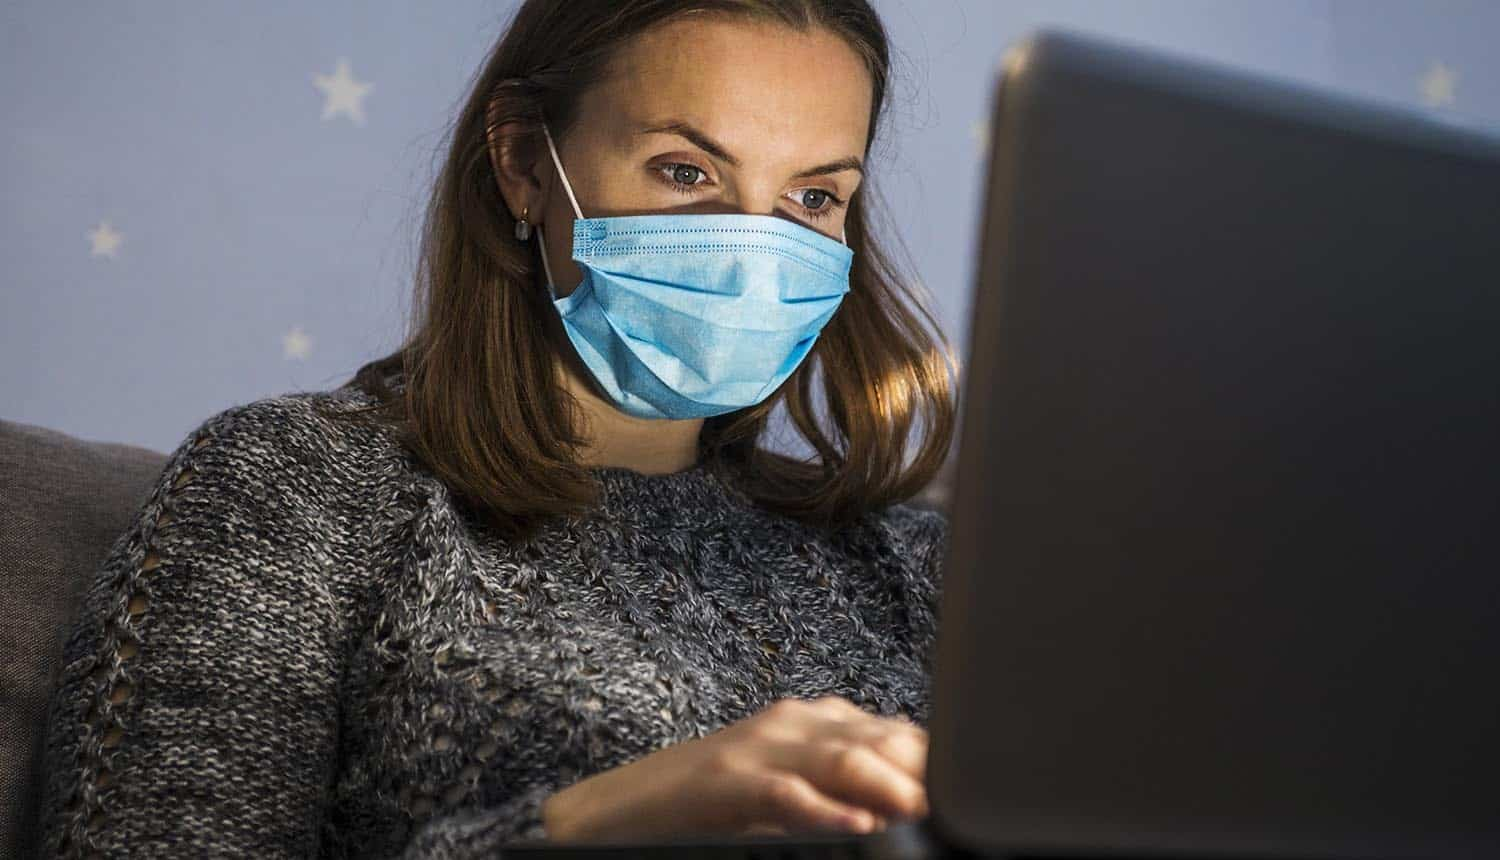 Young business woman in medical mask working from home showing impact of remote working on identity management